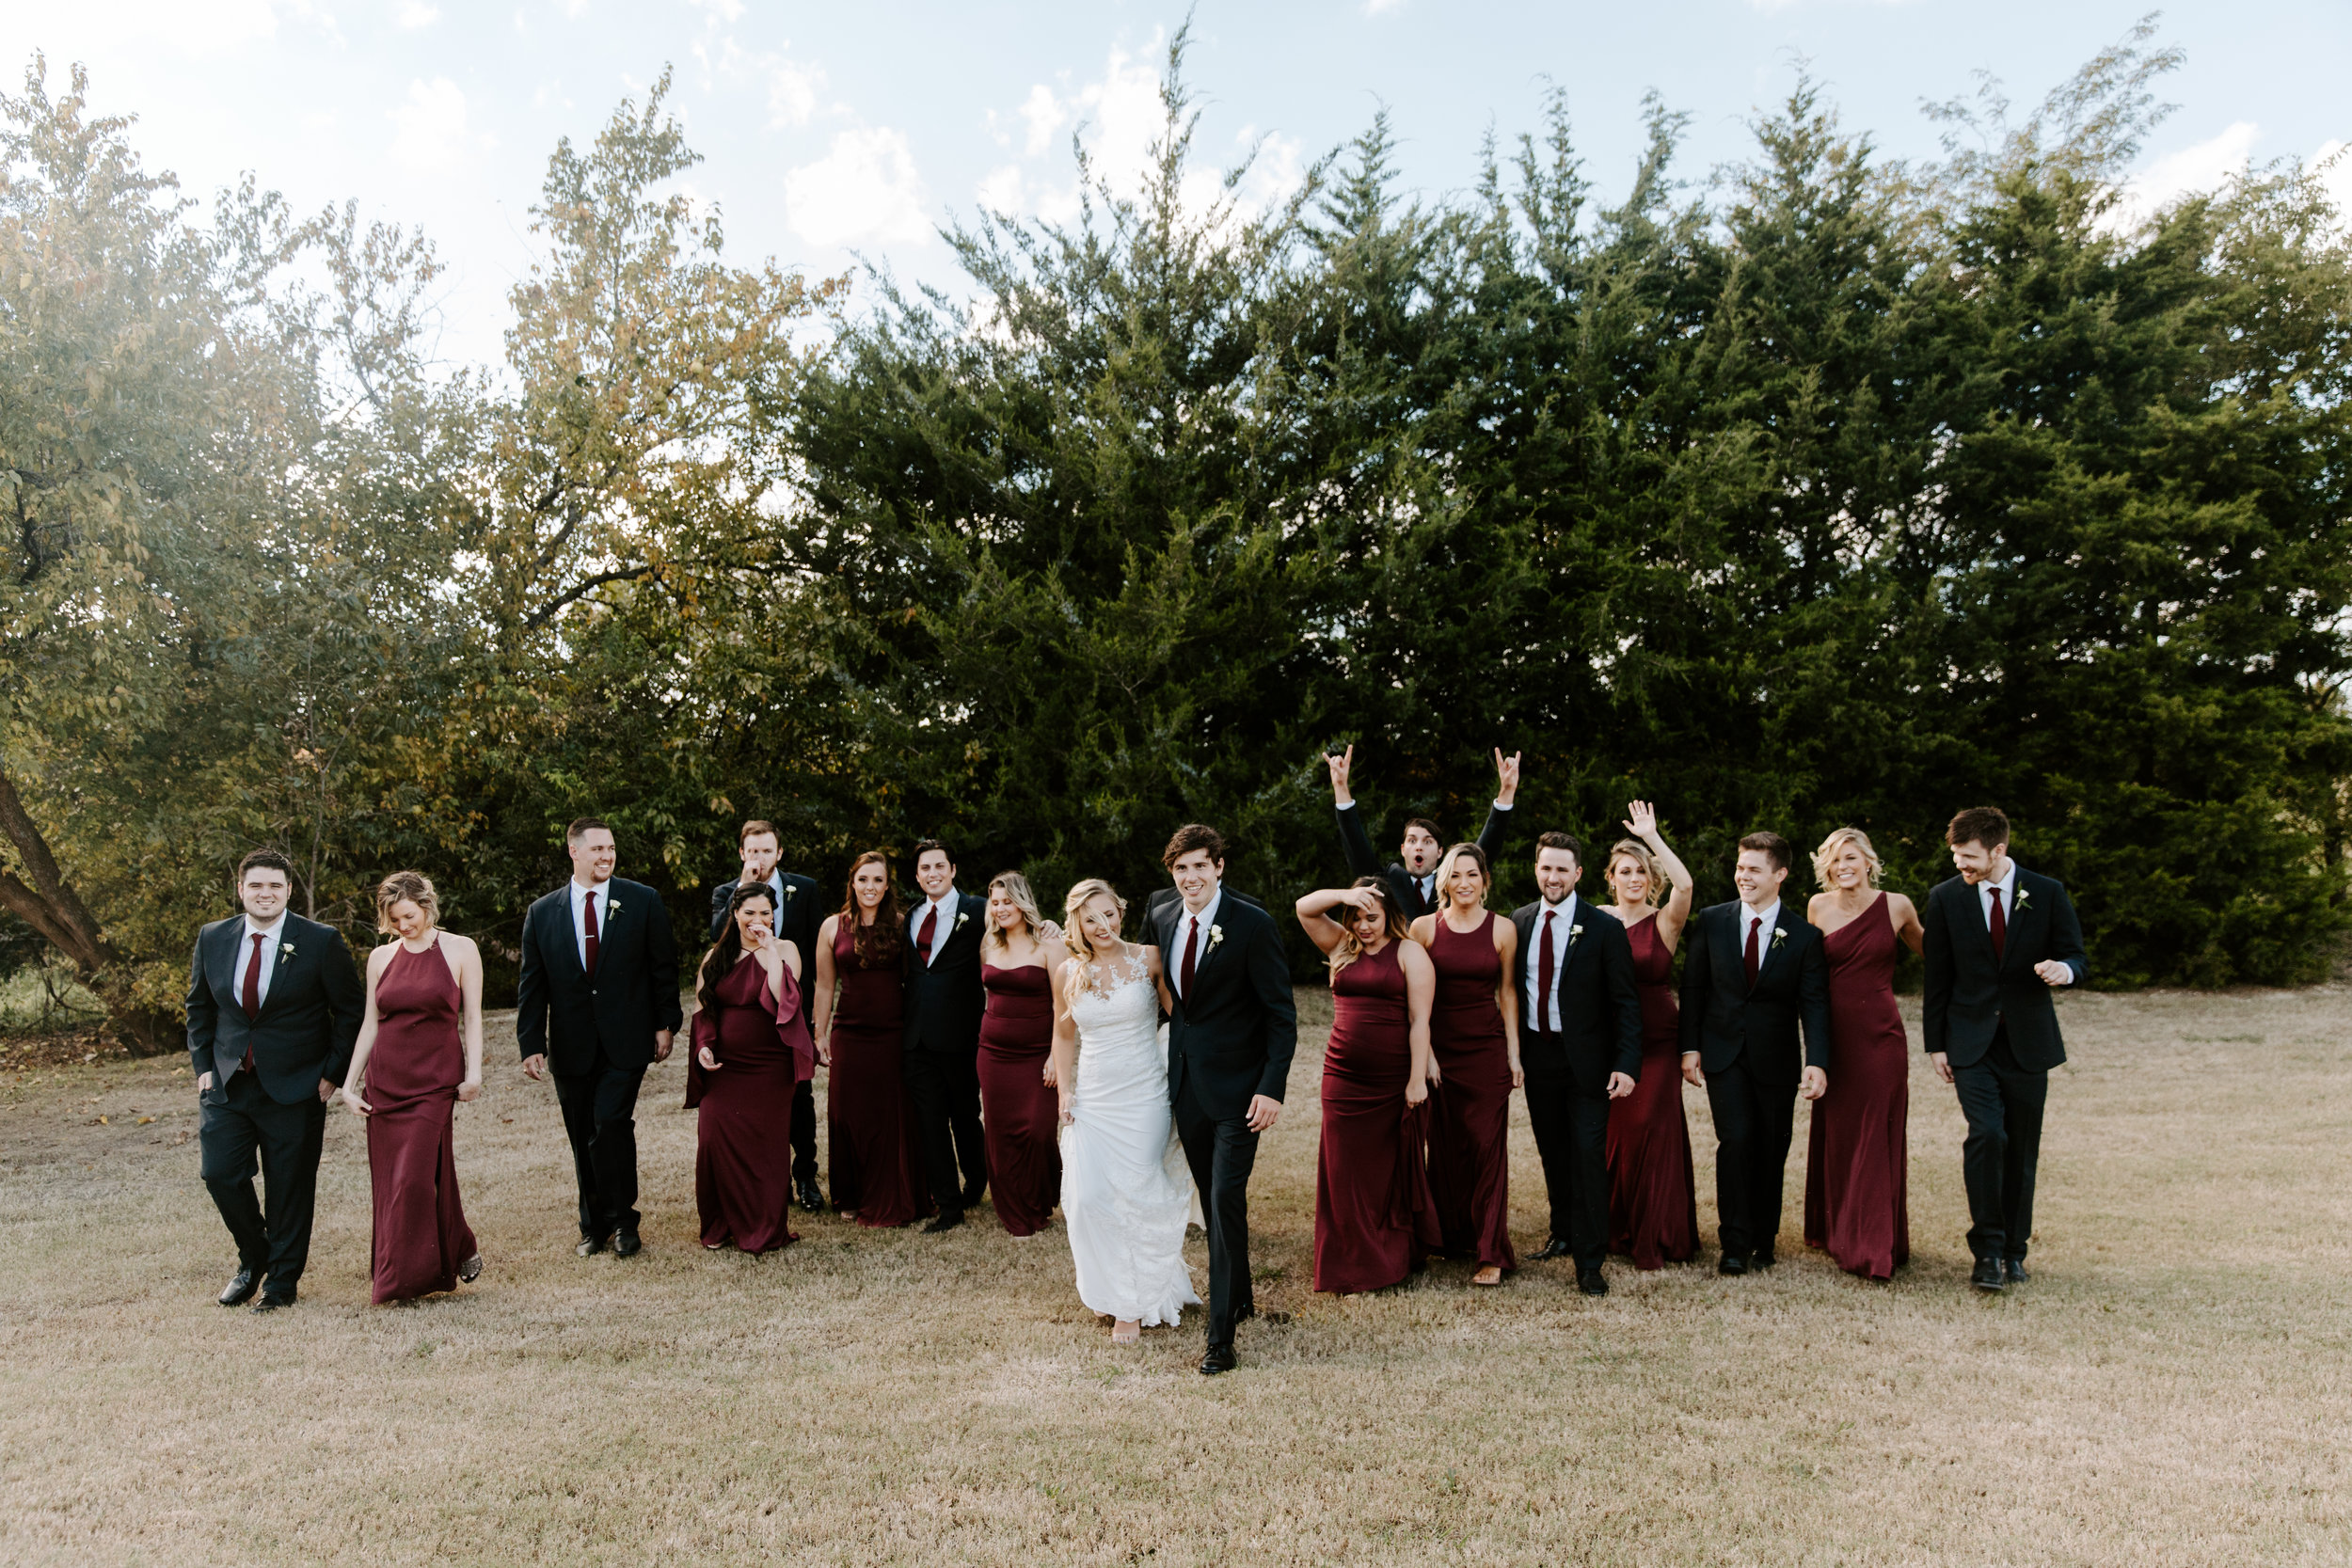 Wedding Bealls - Bridal Party and Family - Meme Urbane Photography_-53.jpg